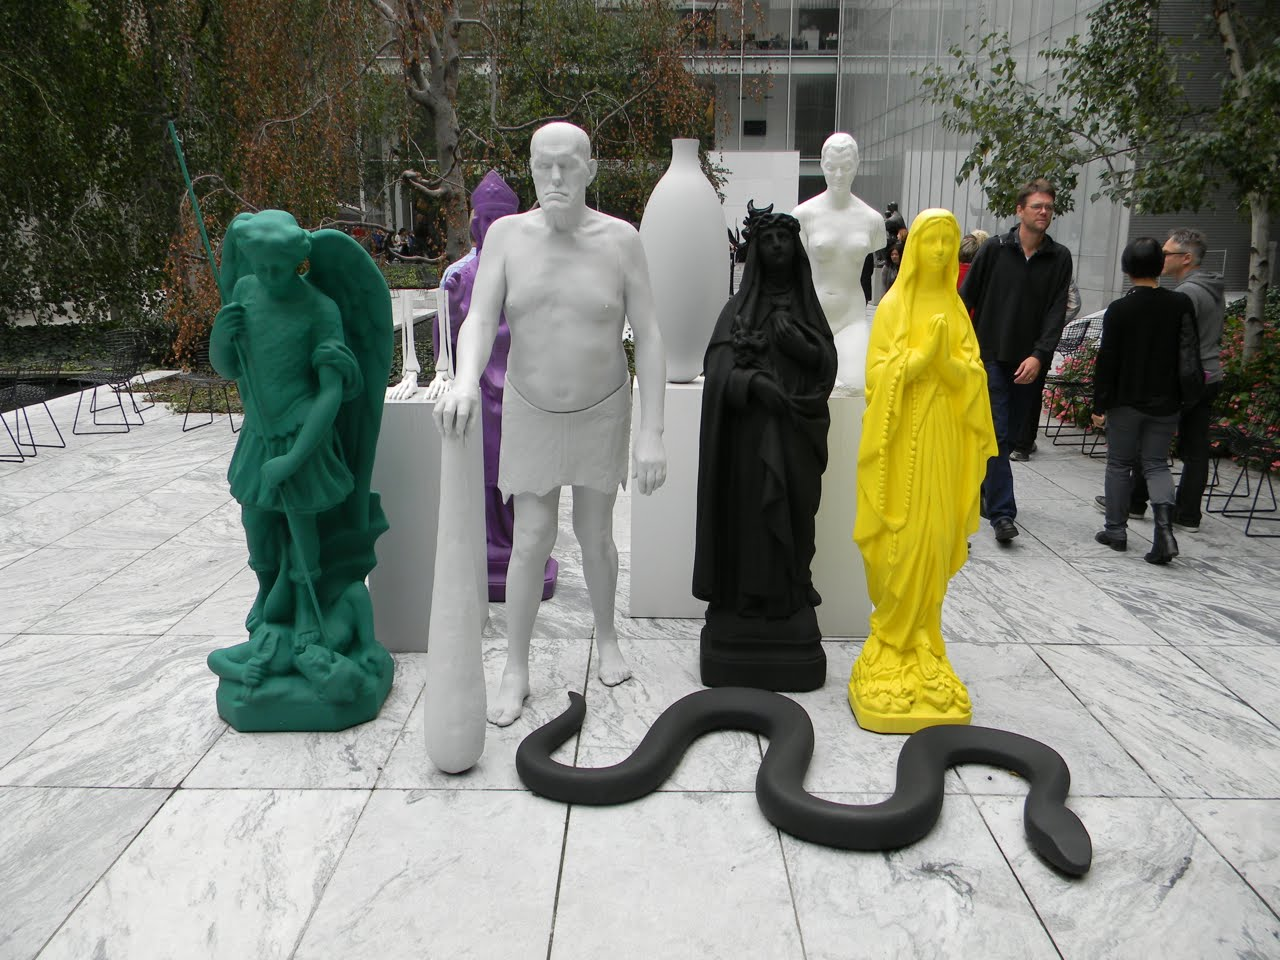 Group of Figures (2006-08)